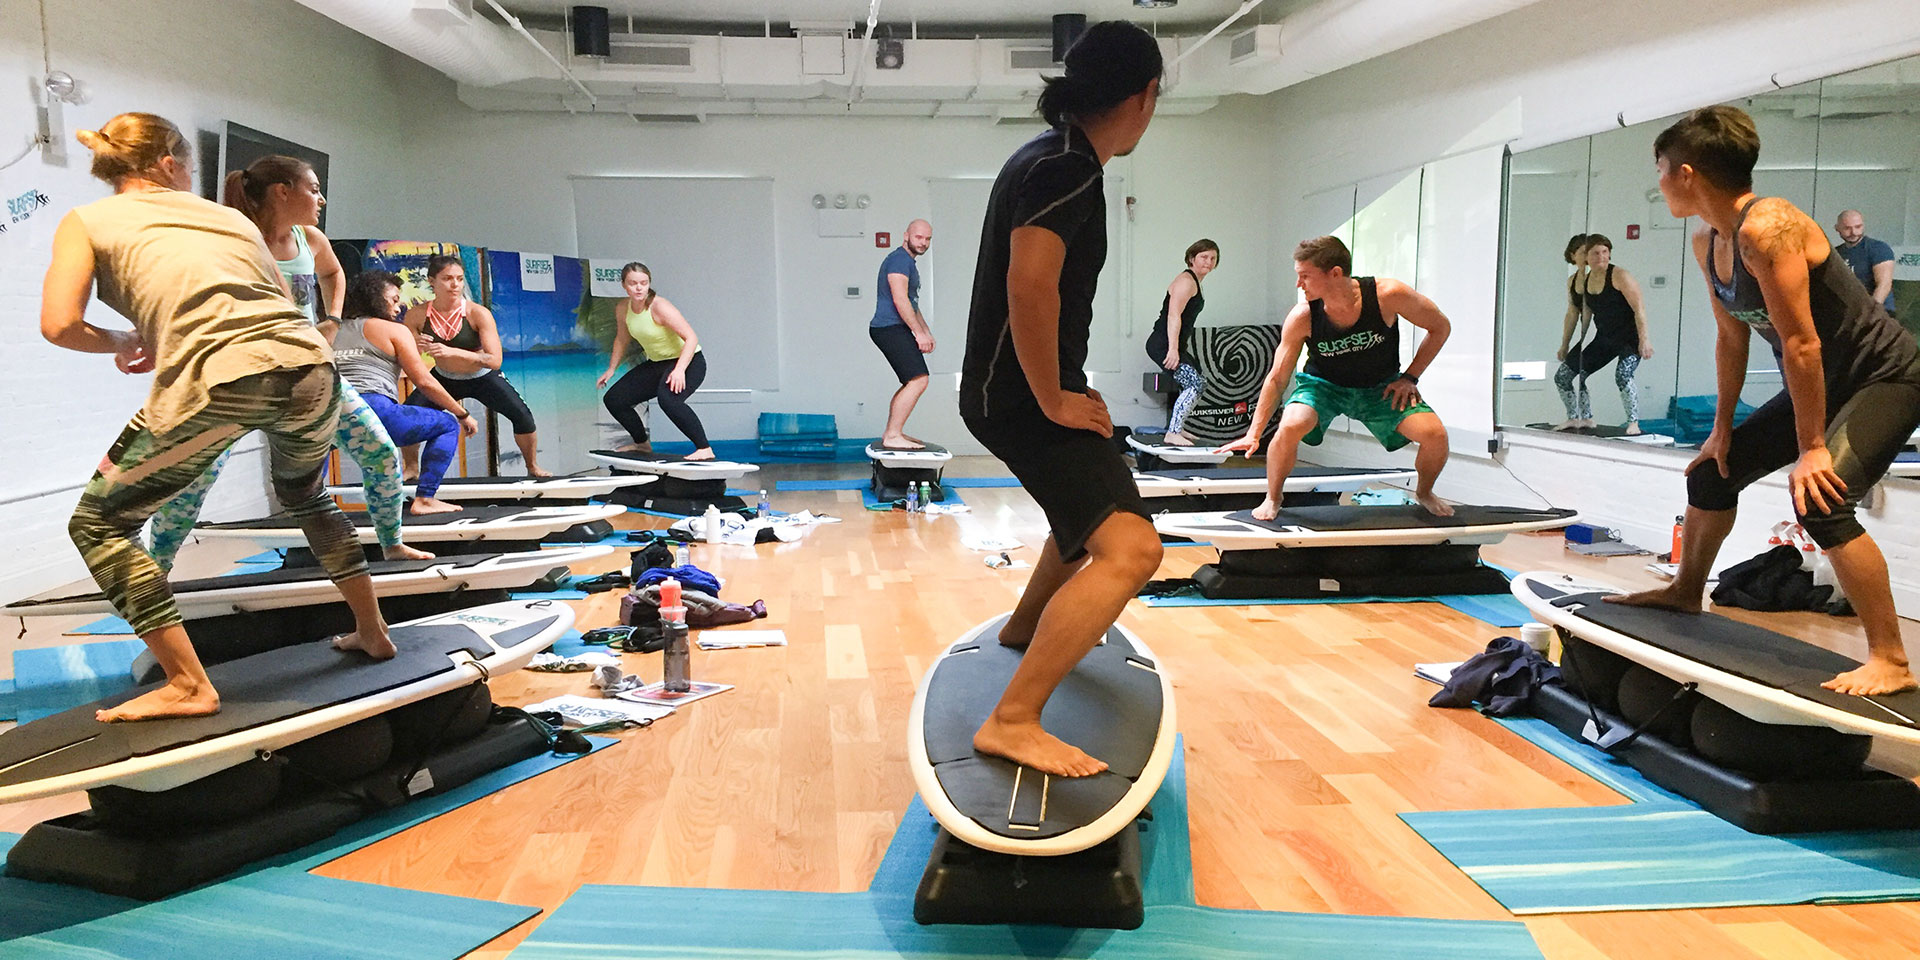 5 Unique Fitness Classes to Take While Visiting NYC nyc fitness classes